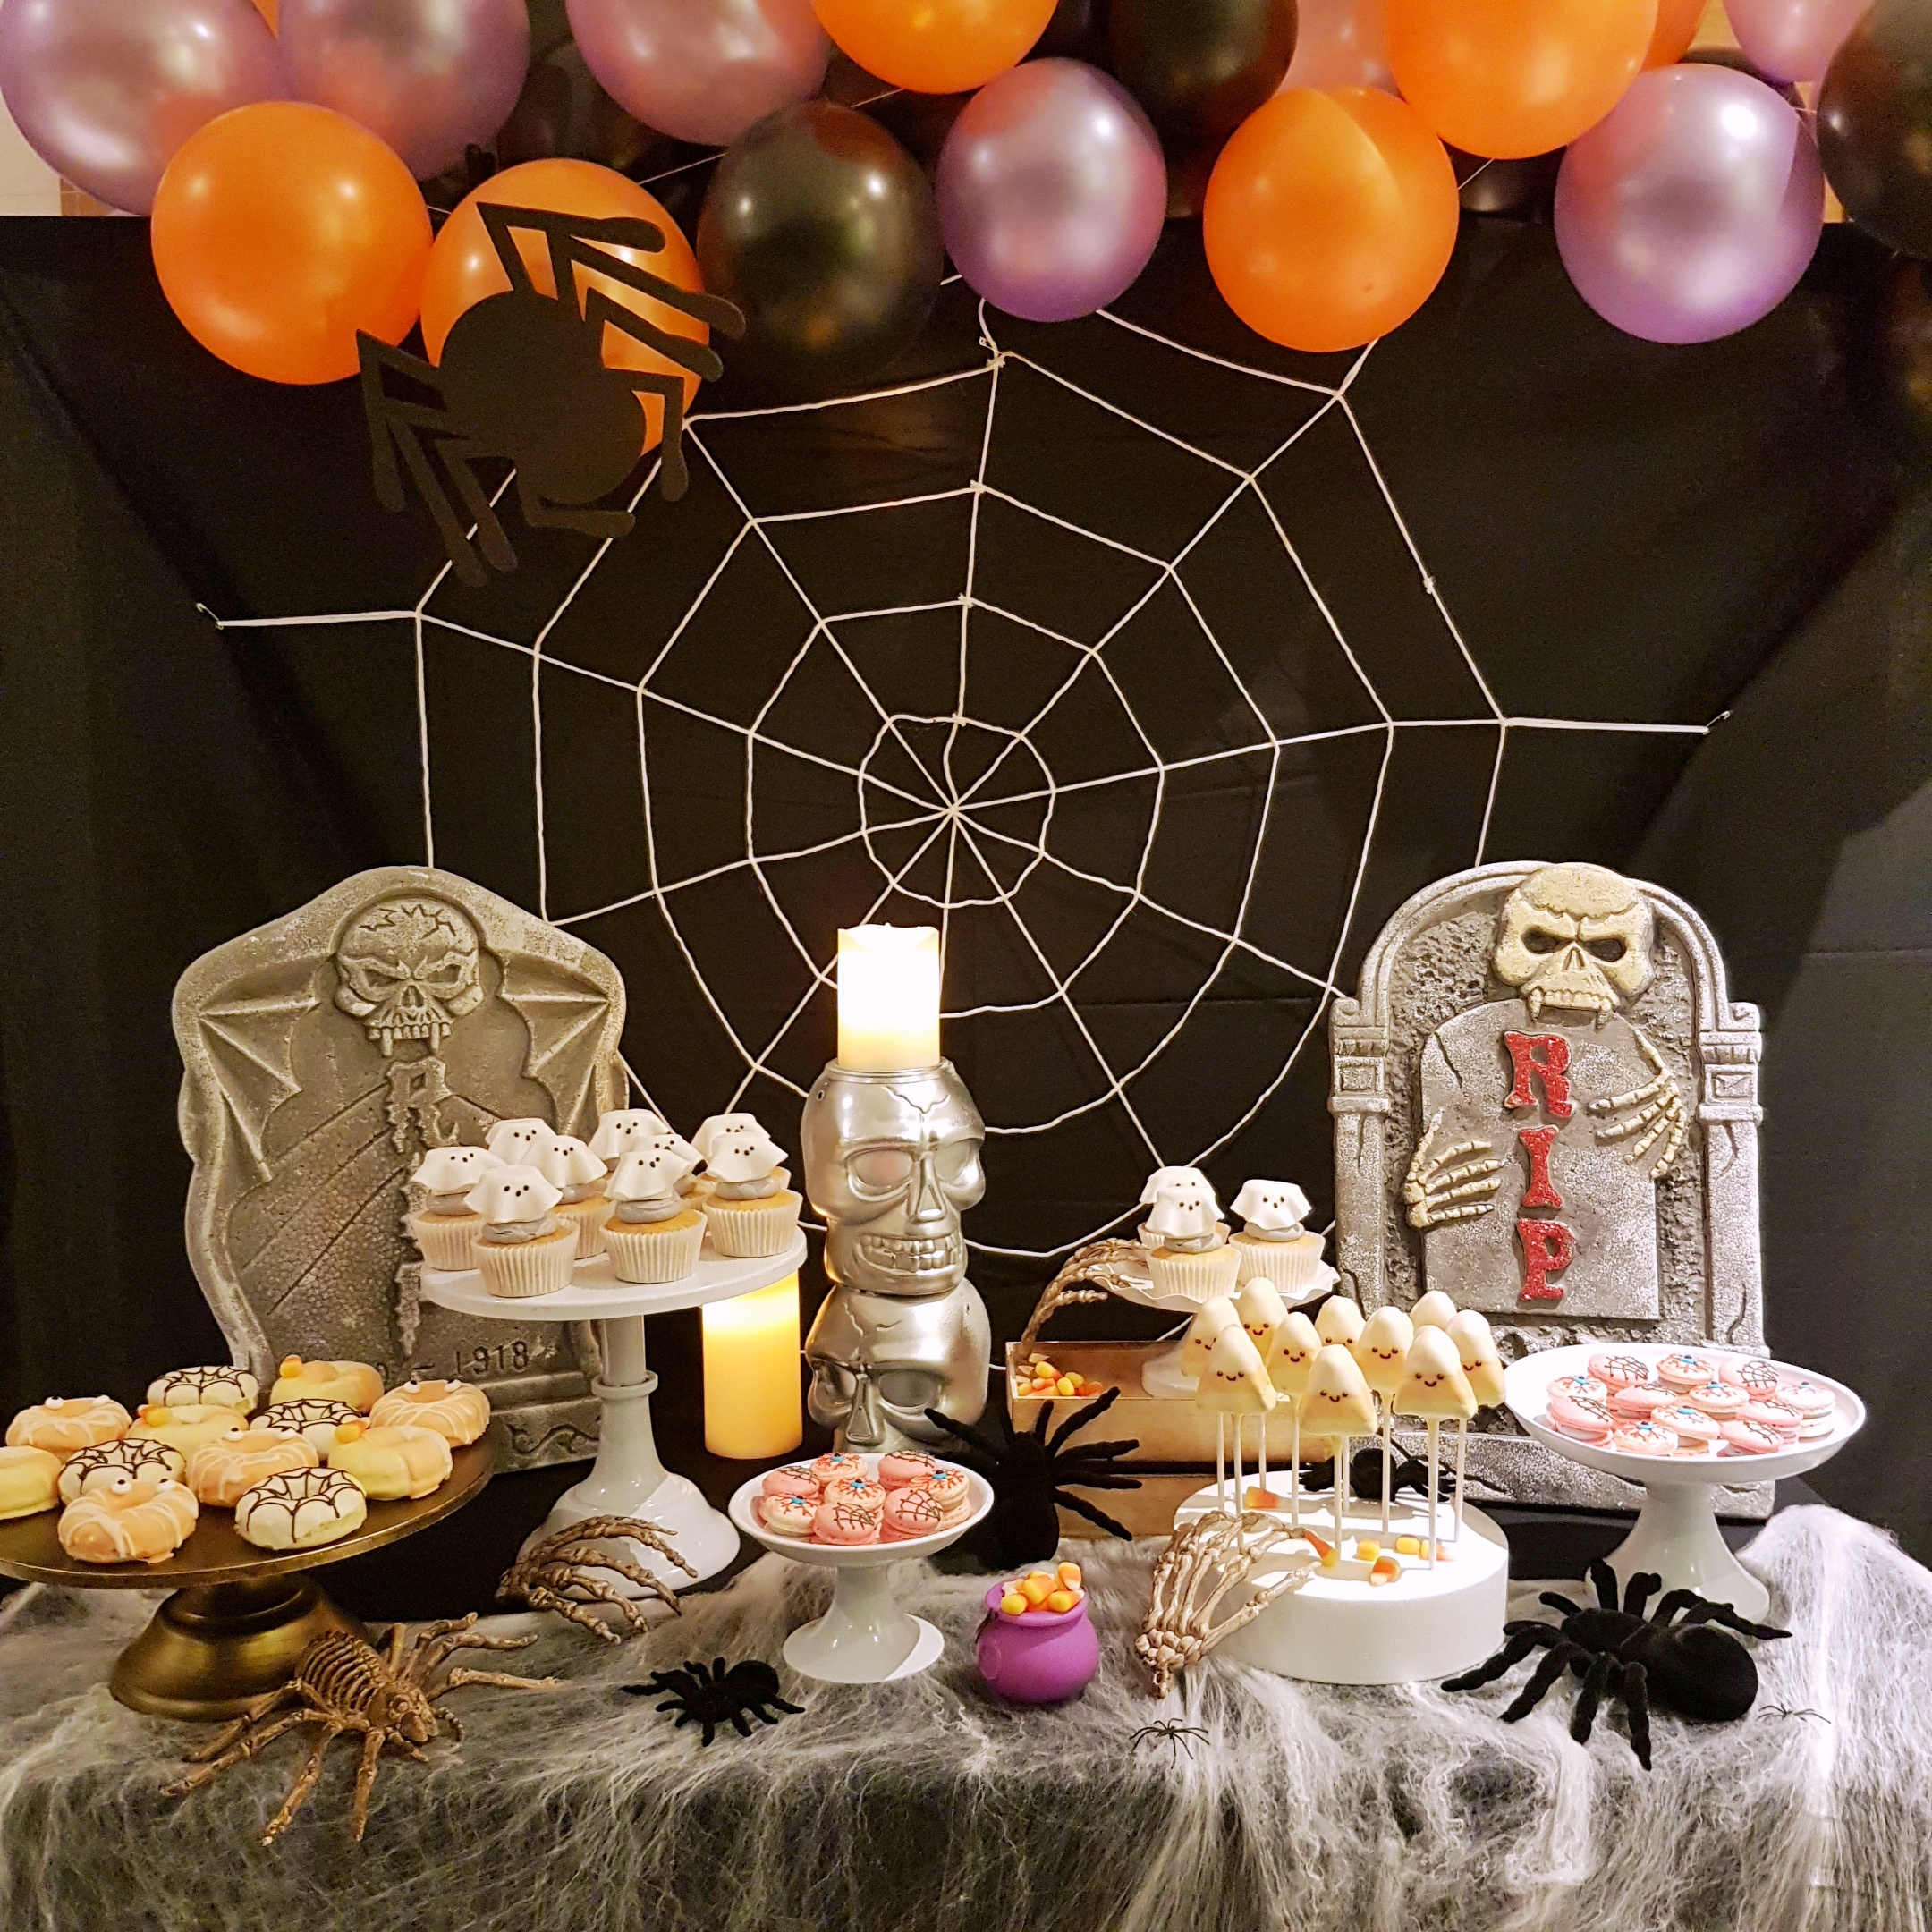 Halloween Dessert Table by The Baking Experiment